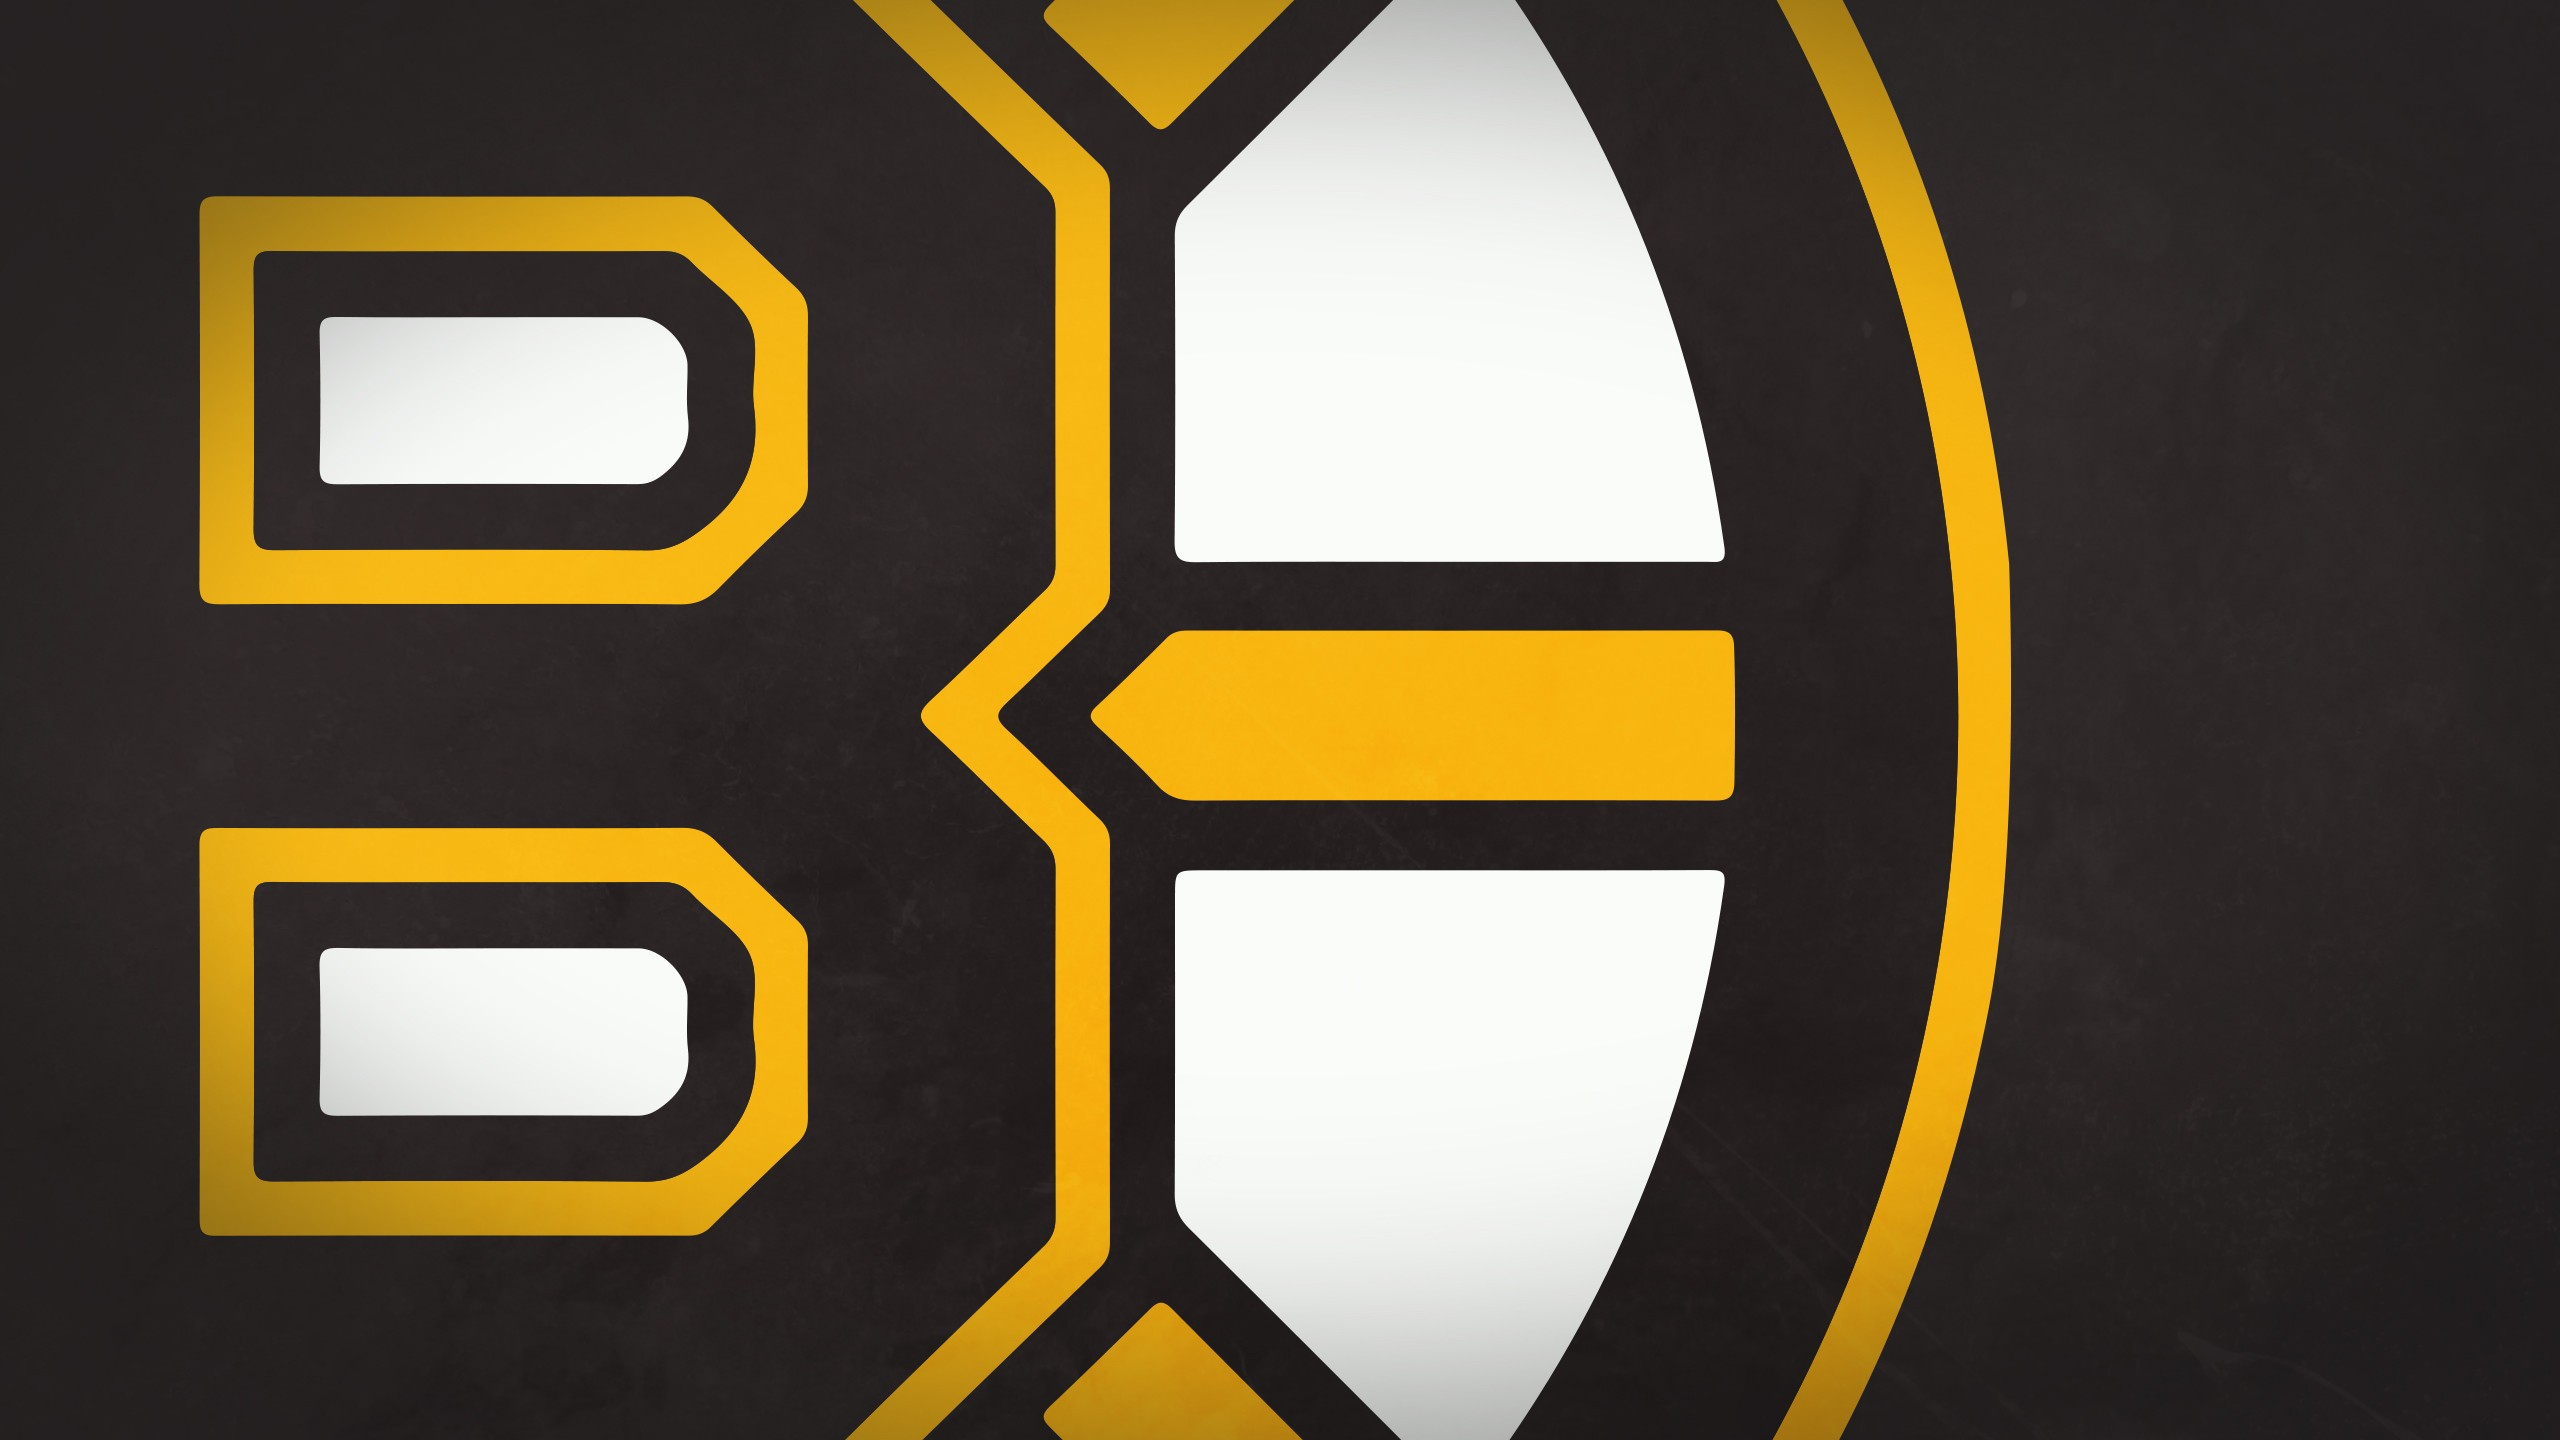 13 Boston Bruins HD Wallpapers | Backgrounds - Wallpaper Abyss